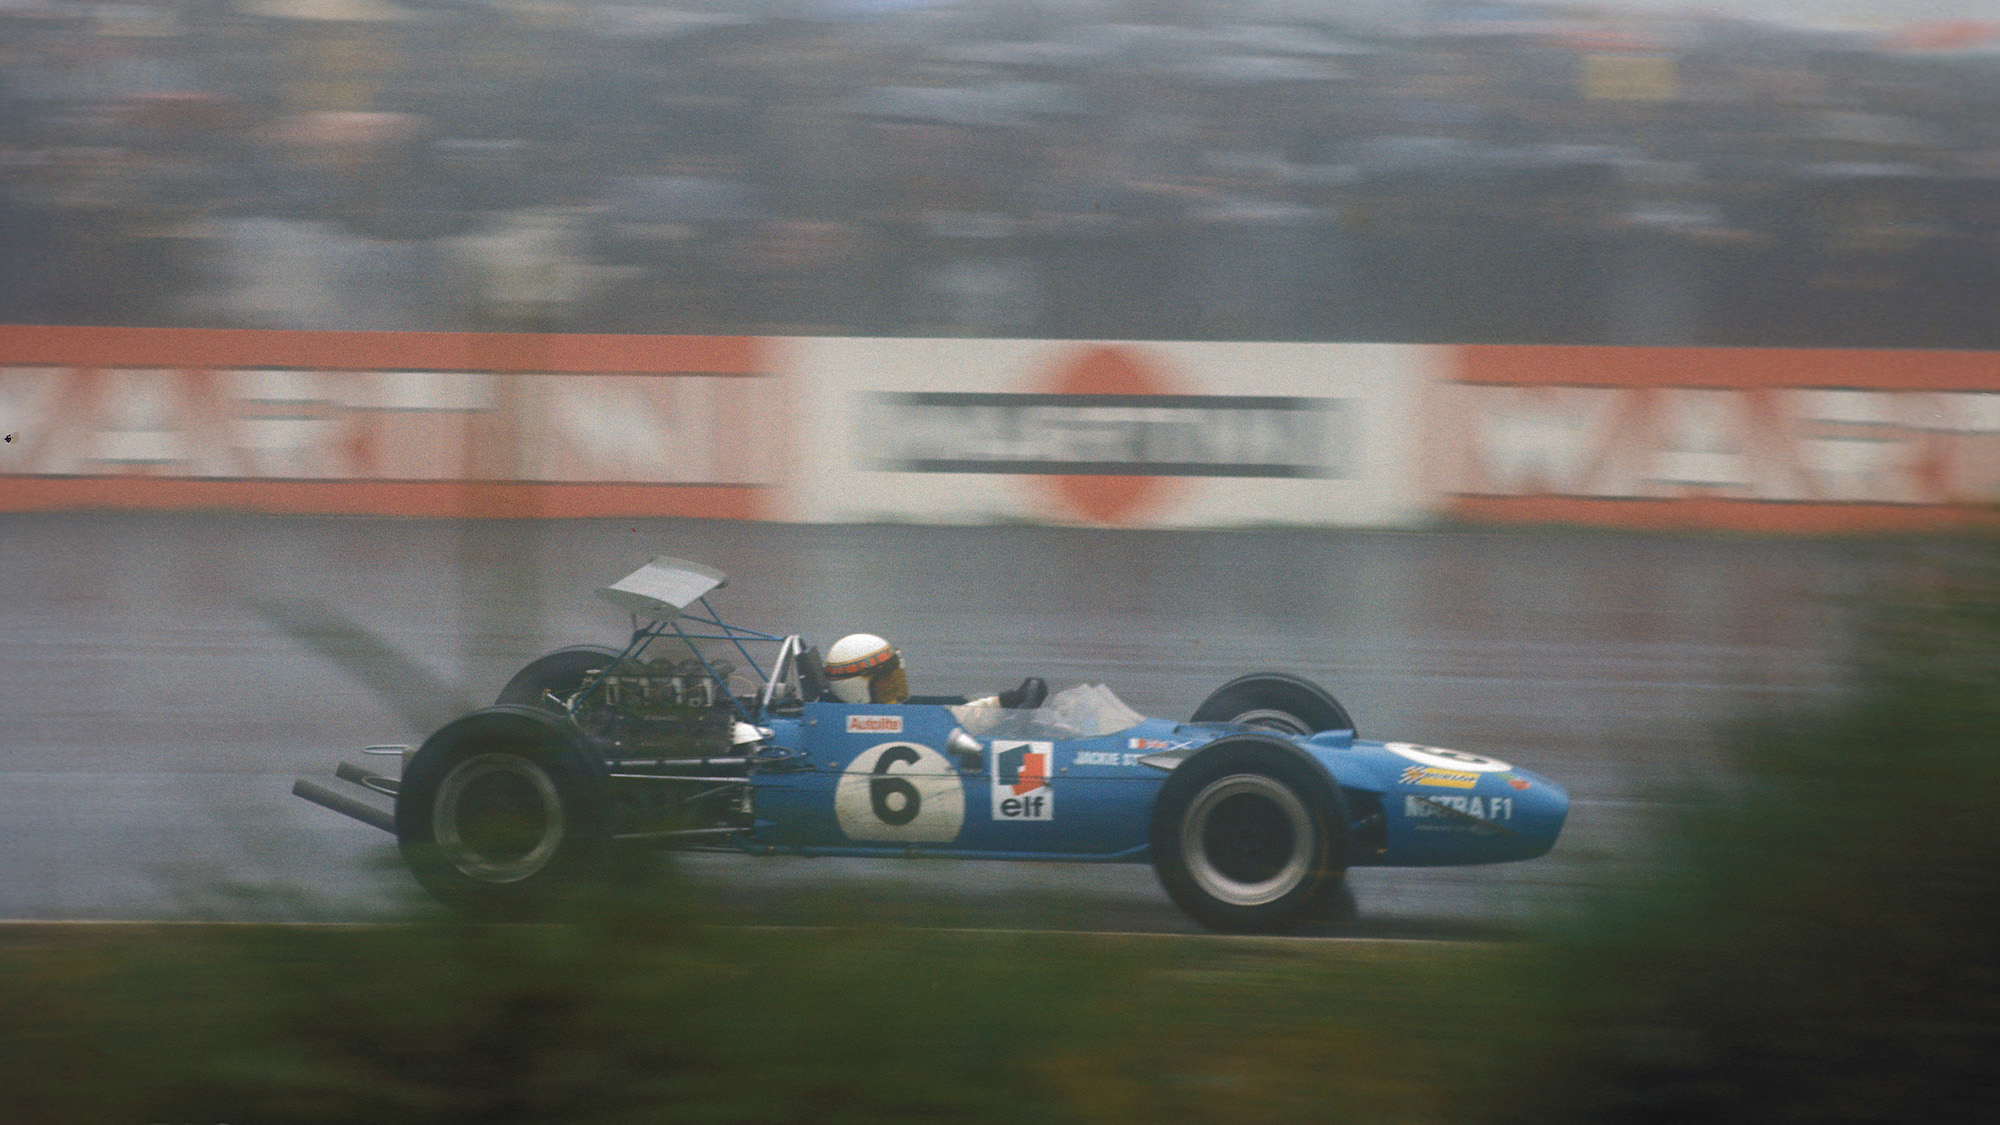 Jackie Stewart in the rain at the Nurburgring during the 1968 German Grand Prix